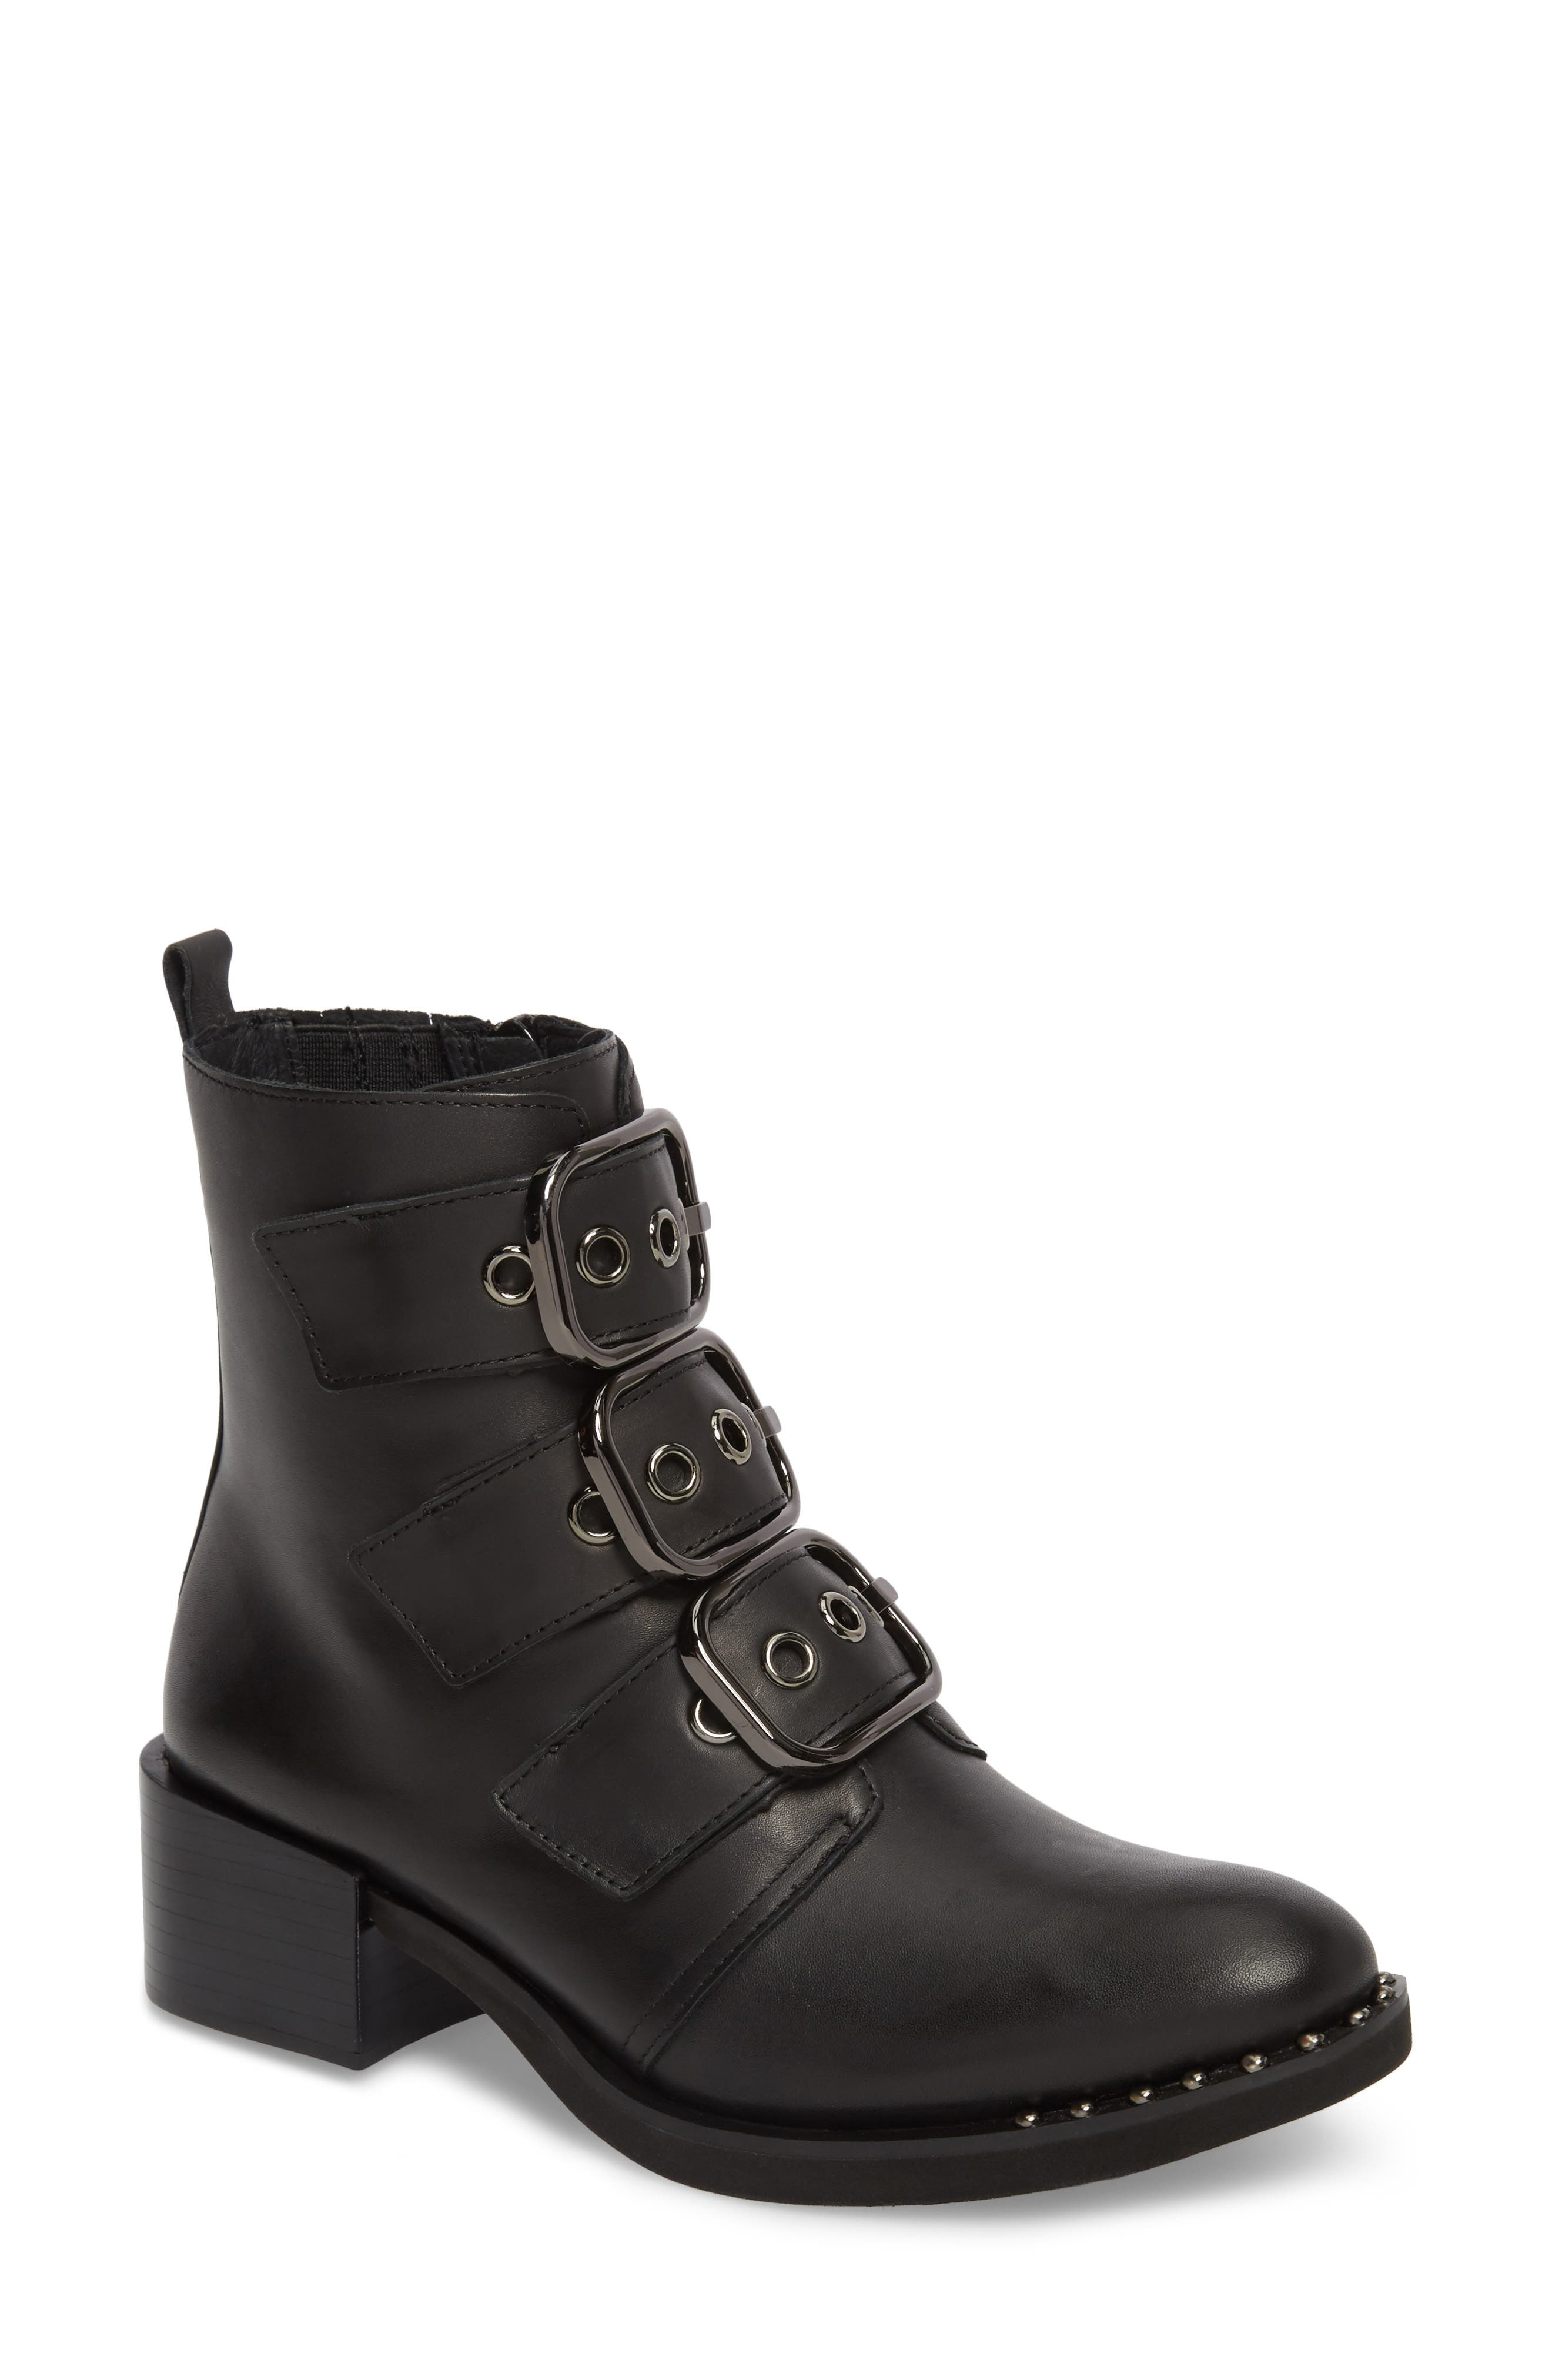 Todd Buckle Strap Bootie,                             Main thumbnail 1, color,                             001